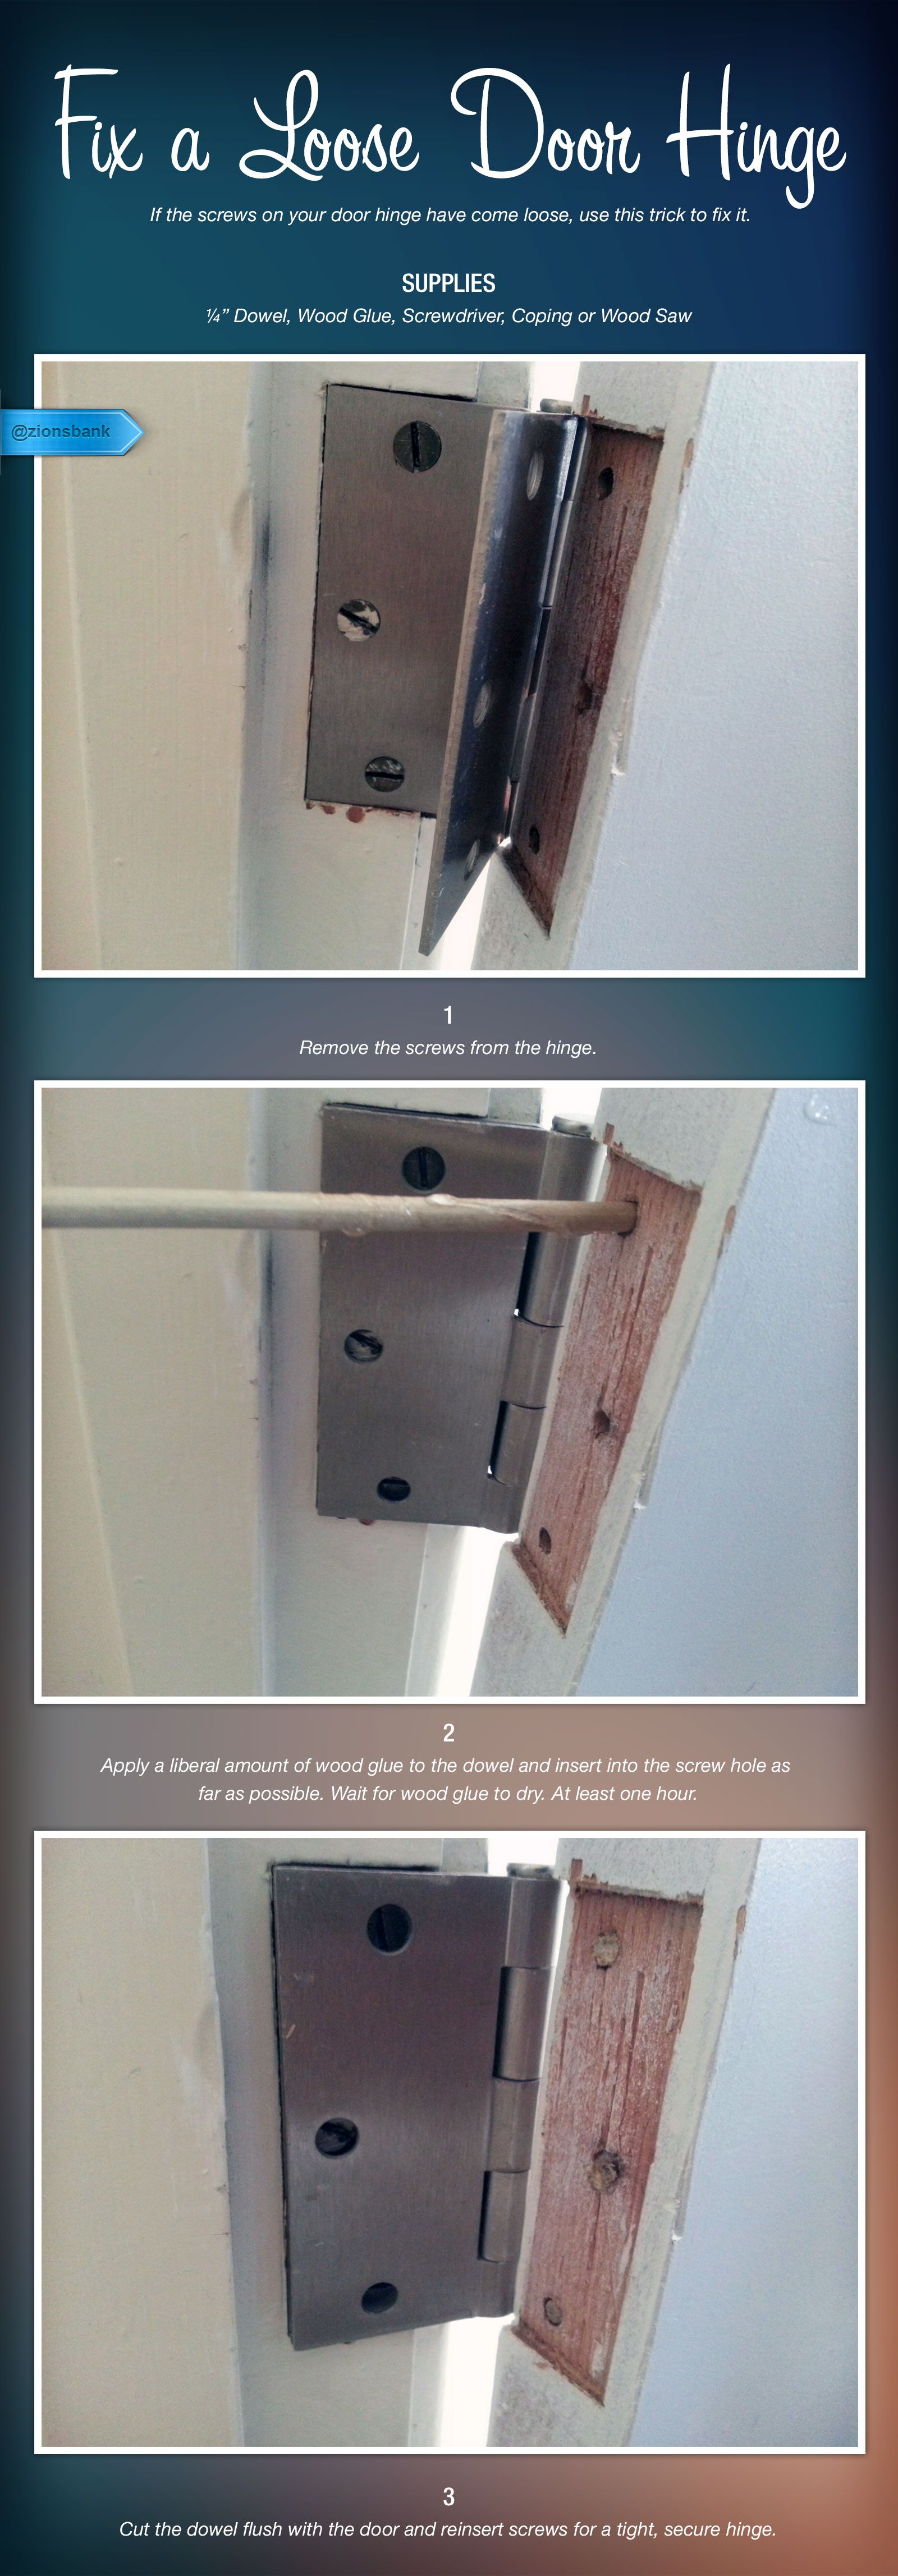 Door Hinge If The Screws In A Door Hinge Have Come Loose This Is The Way To Fix Them Keeping The Loose Screws In The Hi Door Hinges Door Hinge Repair